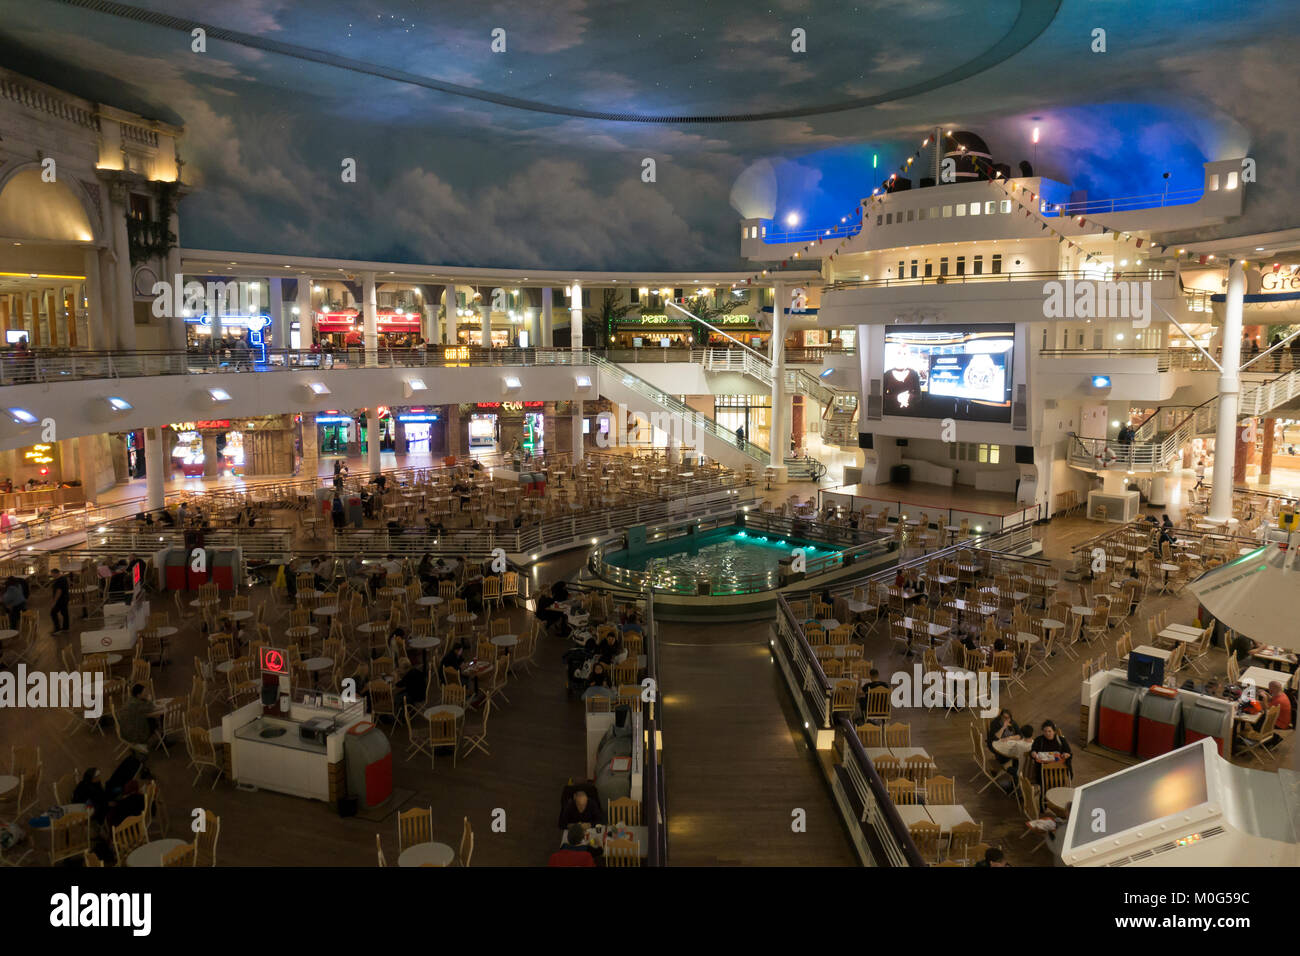 The Orient food court at intu Trafford Centre, Manchester, England. - Stock Image